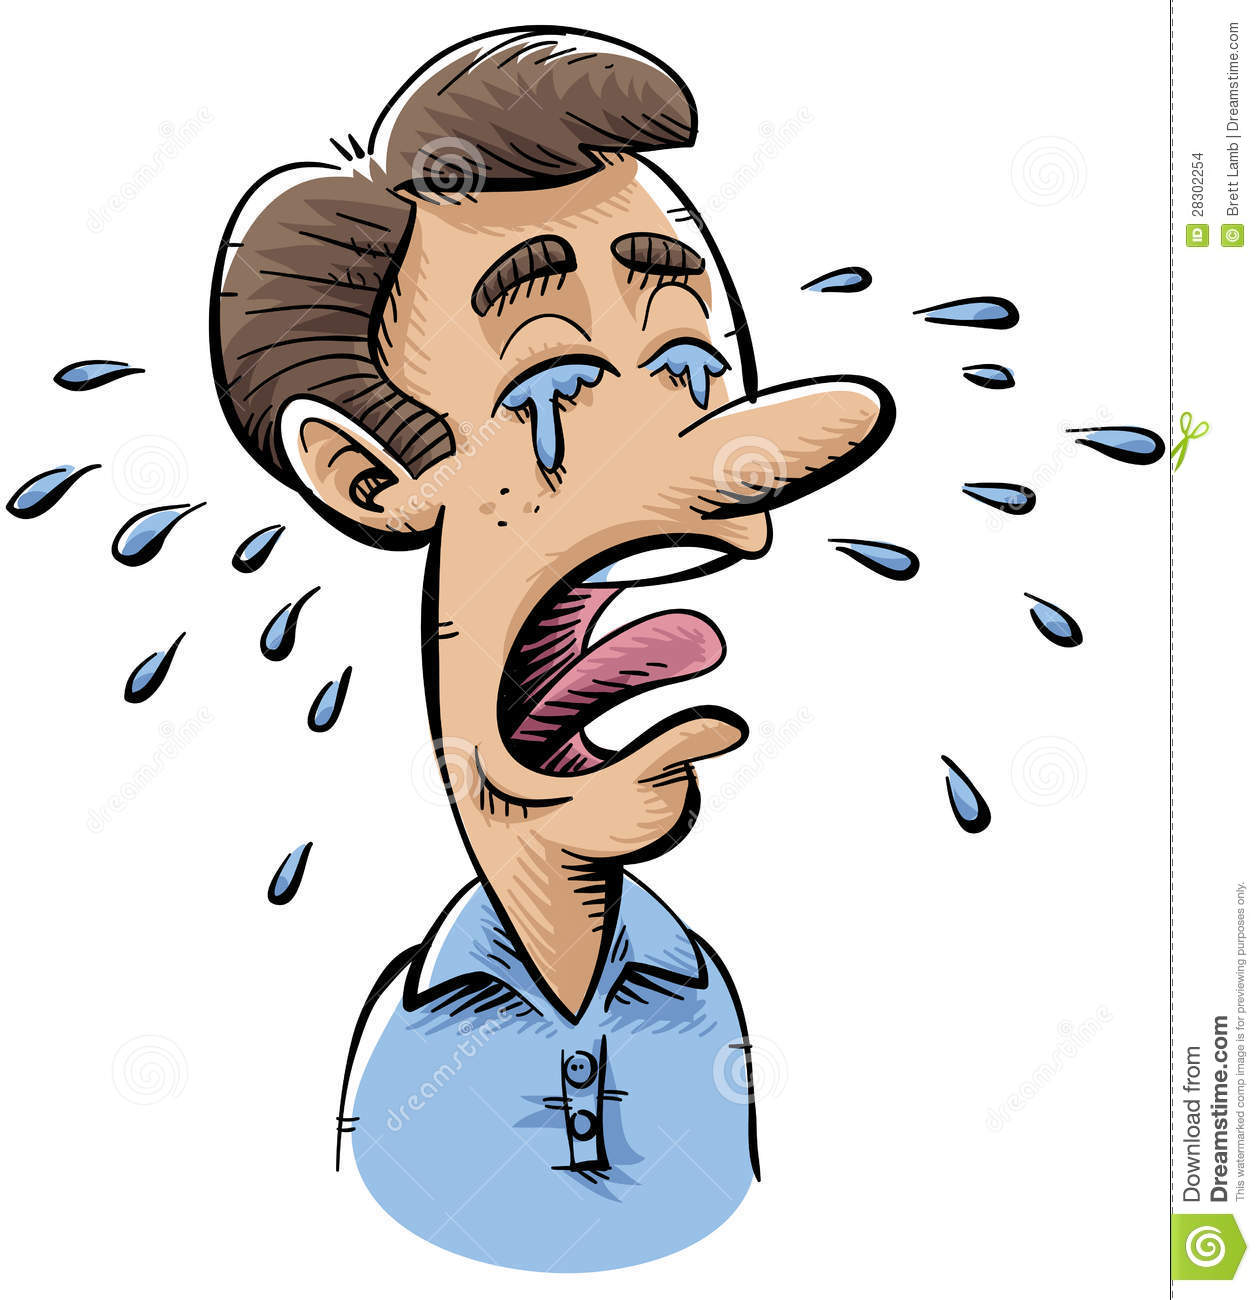 Person Crying Clipart - Clipart Suggest